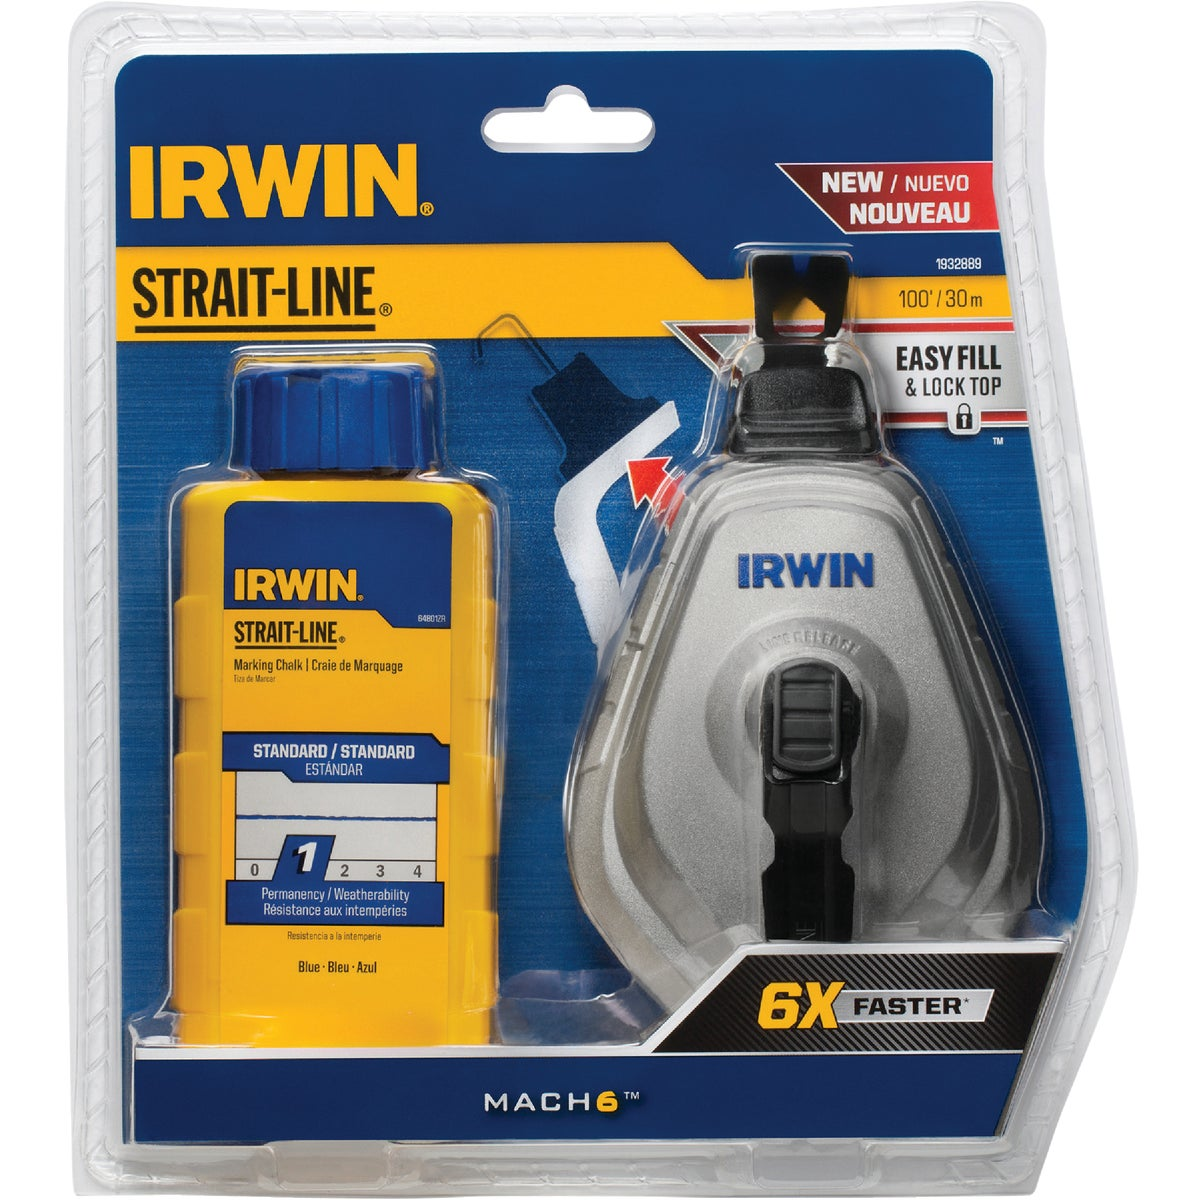 6X CHALKLINE REEL COMBO - 2031315DS by Irwin Industr Tool